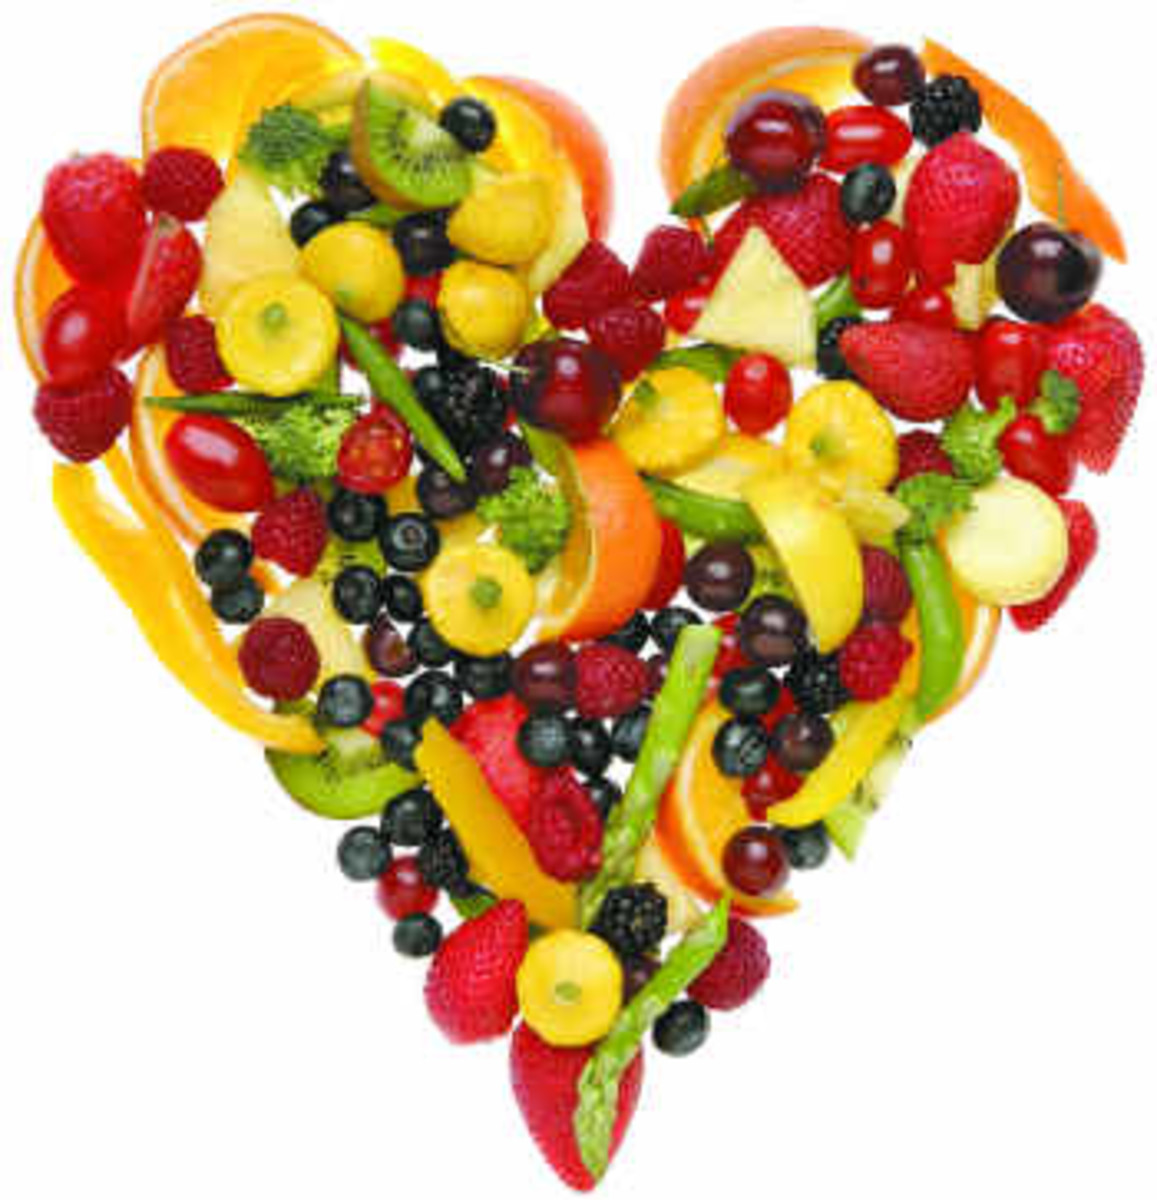 There are a lot of reasons to eat a healthy diet. Your heart is one of them.